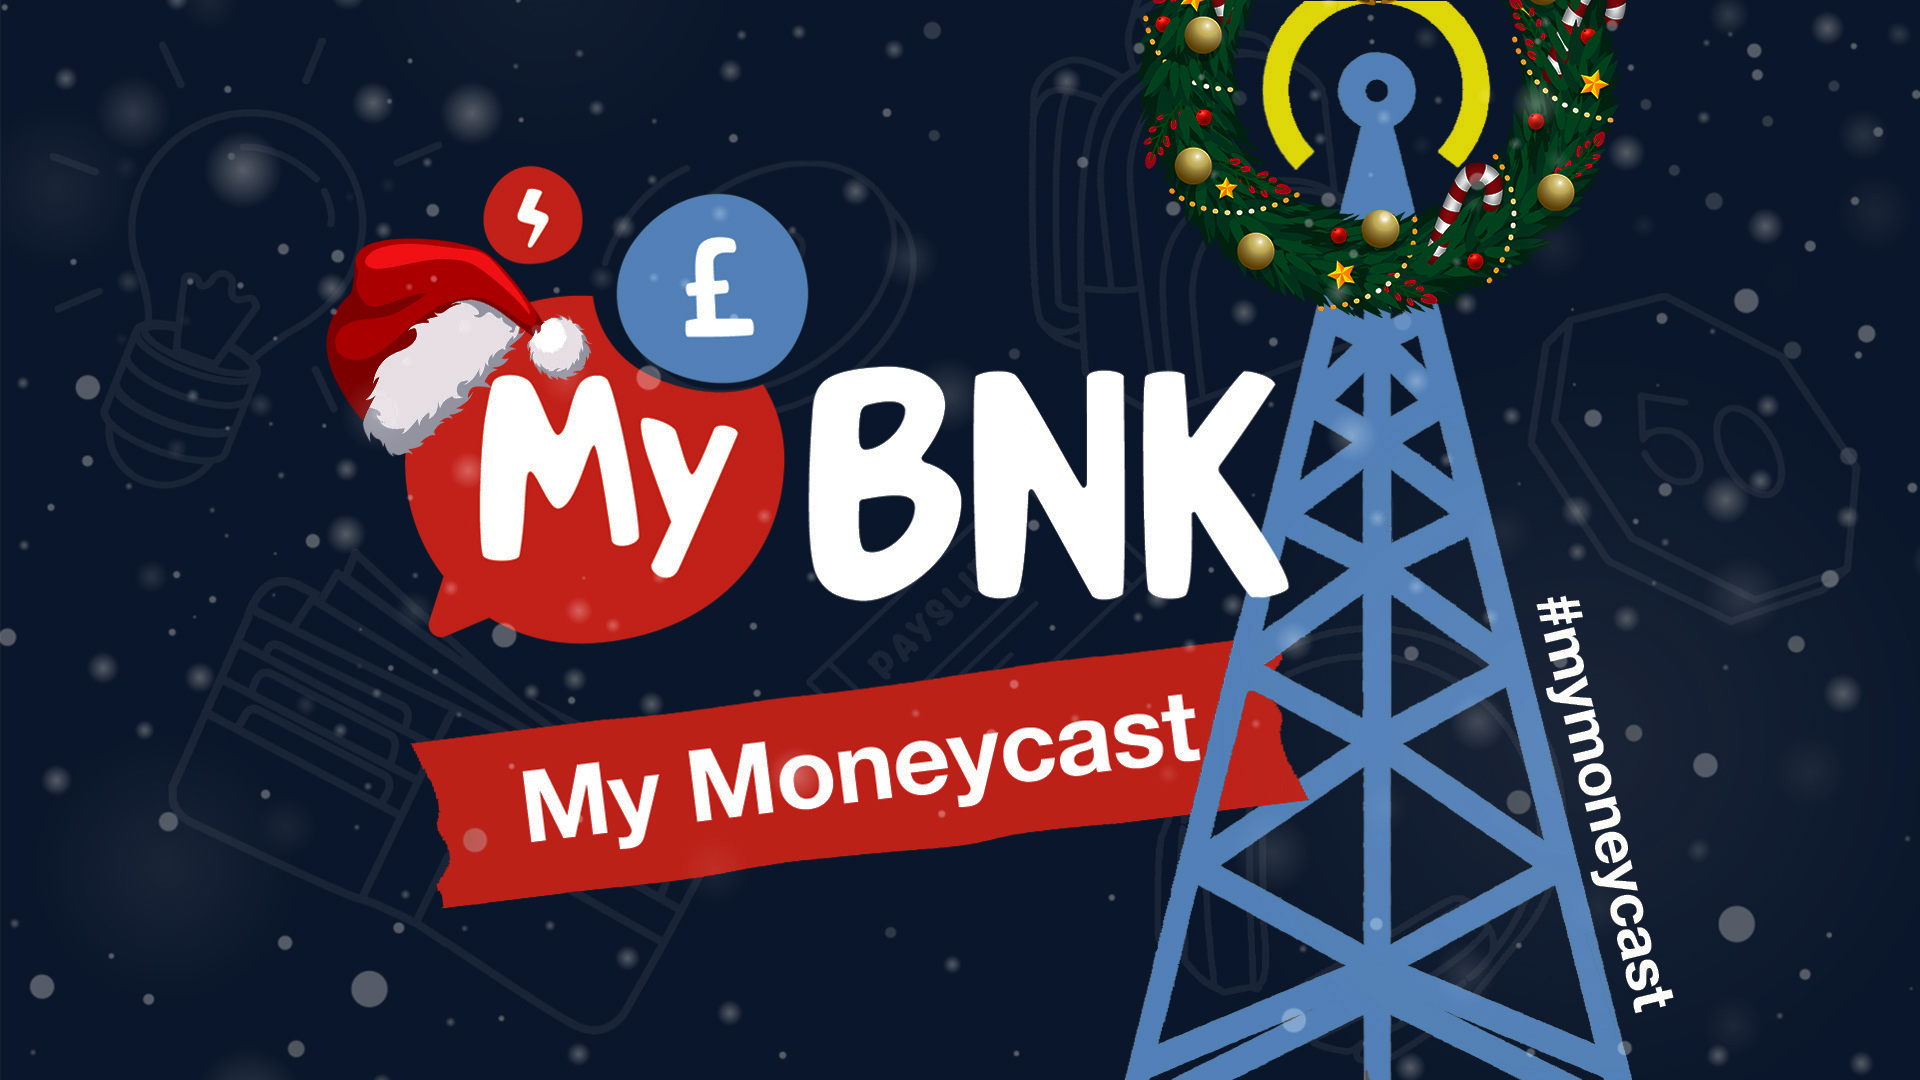 My Moneycast Christmas Special!